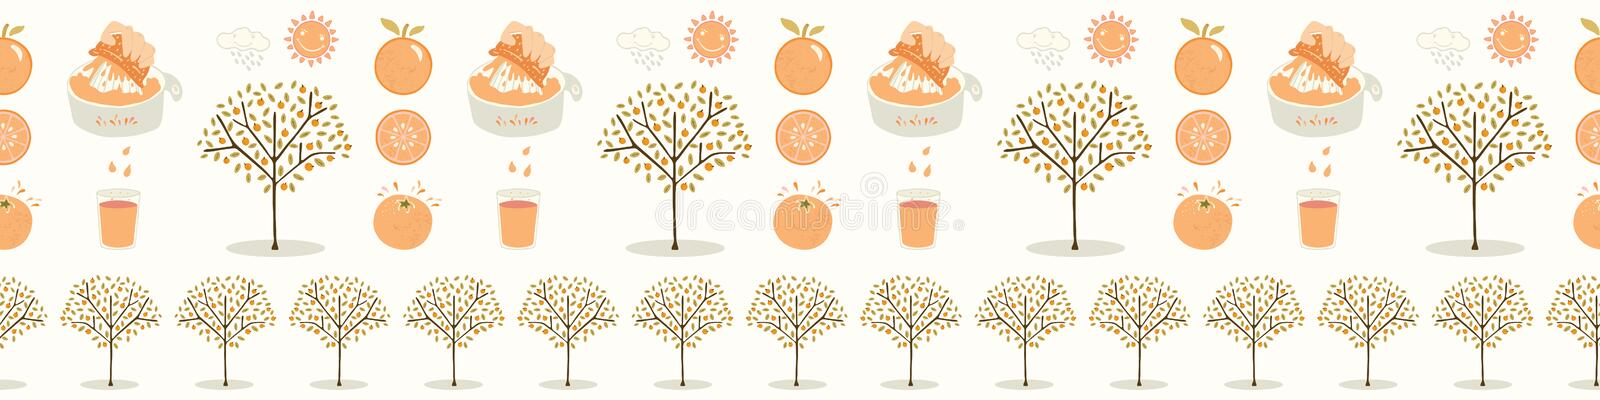 Vector orange tree grove. Hand drawn seamless vector border illustration. Organic garden with juicy oranges, citrus fruit. Freshly squeezed juice for growing vector illustration